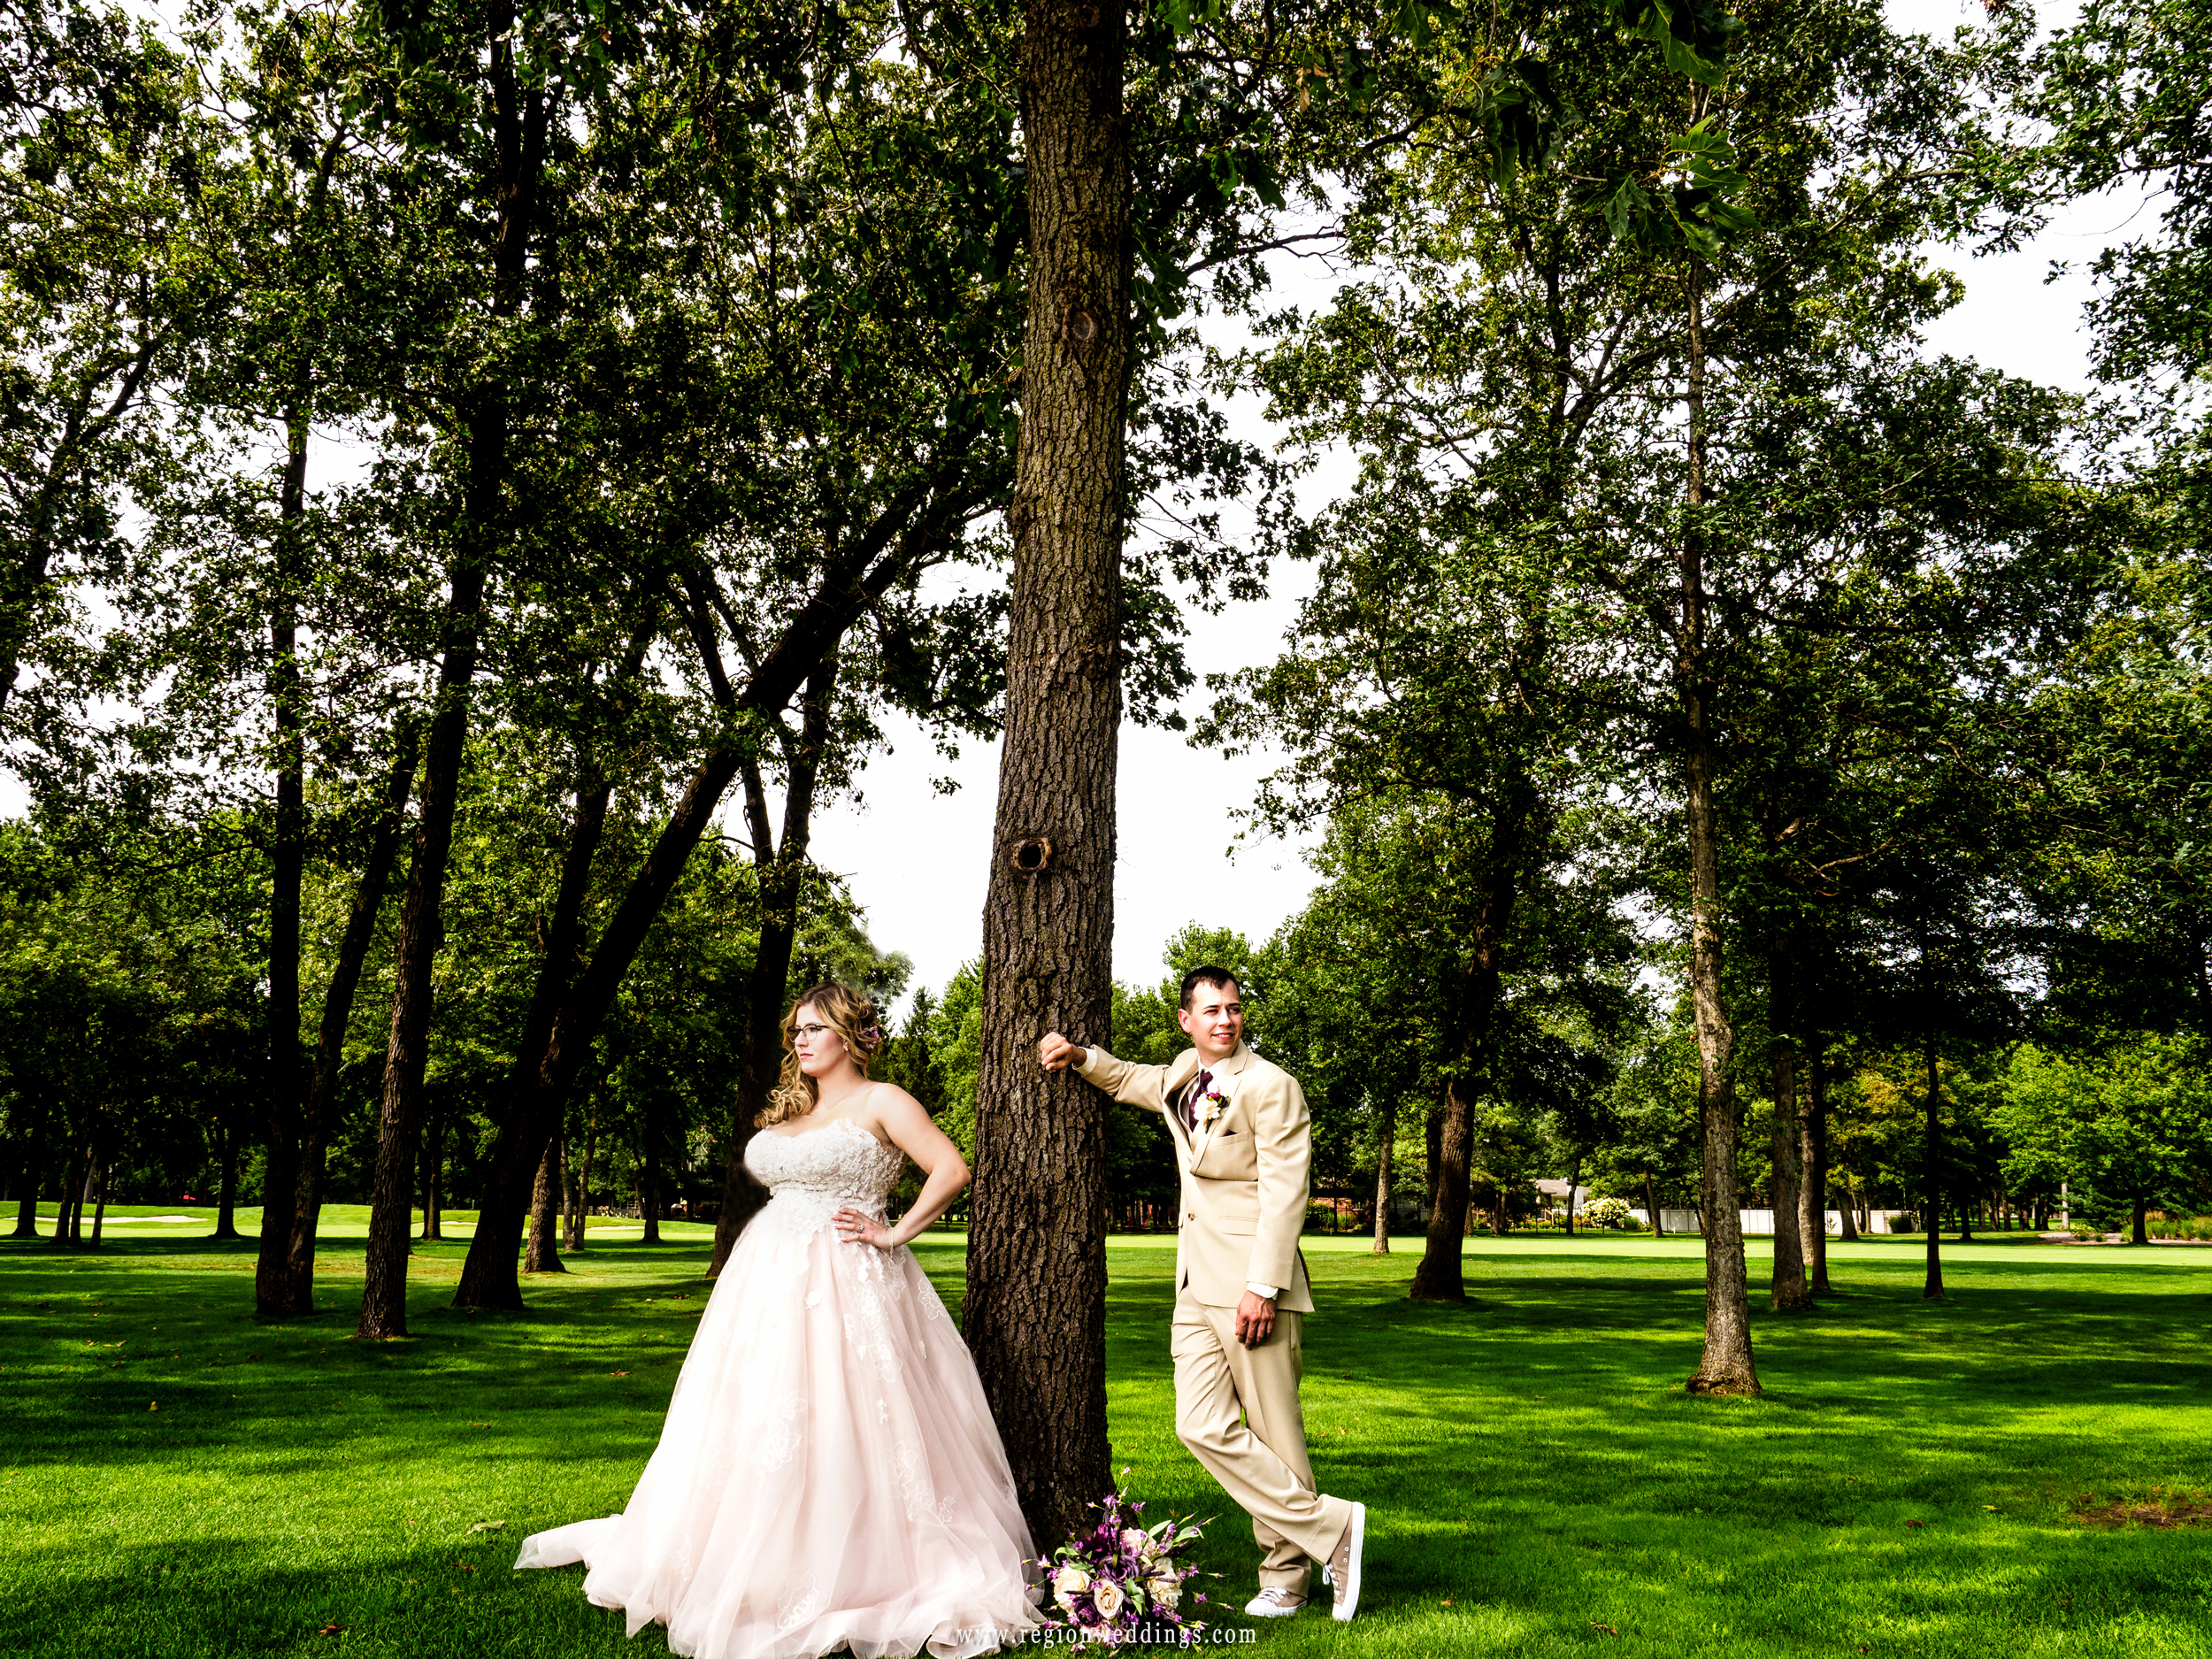 Bride and groom looking fashionable underneath the tall trees at Sandy Pines Pavilion.